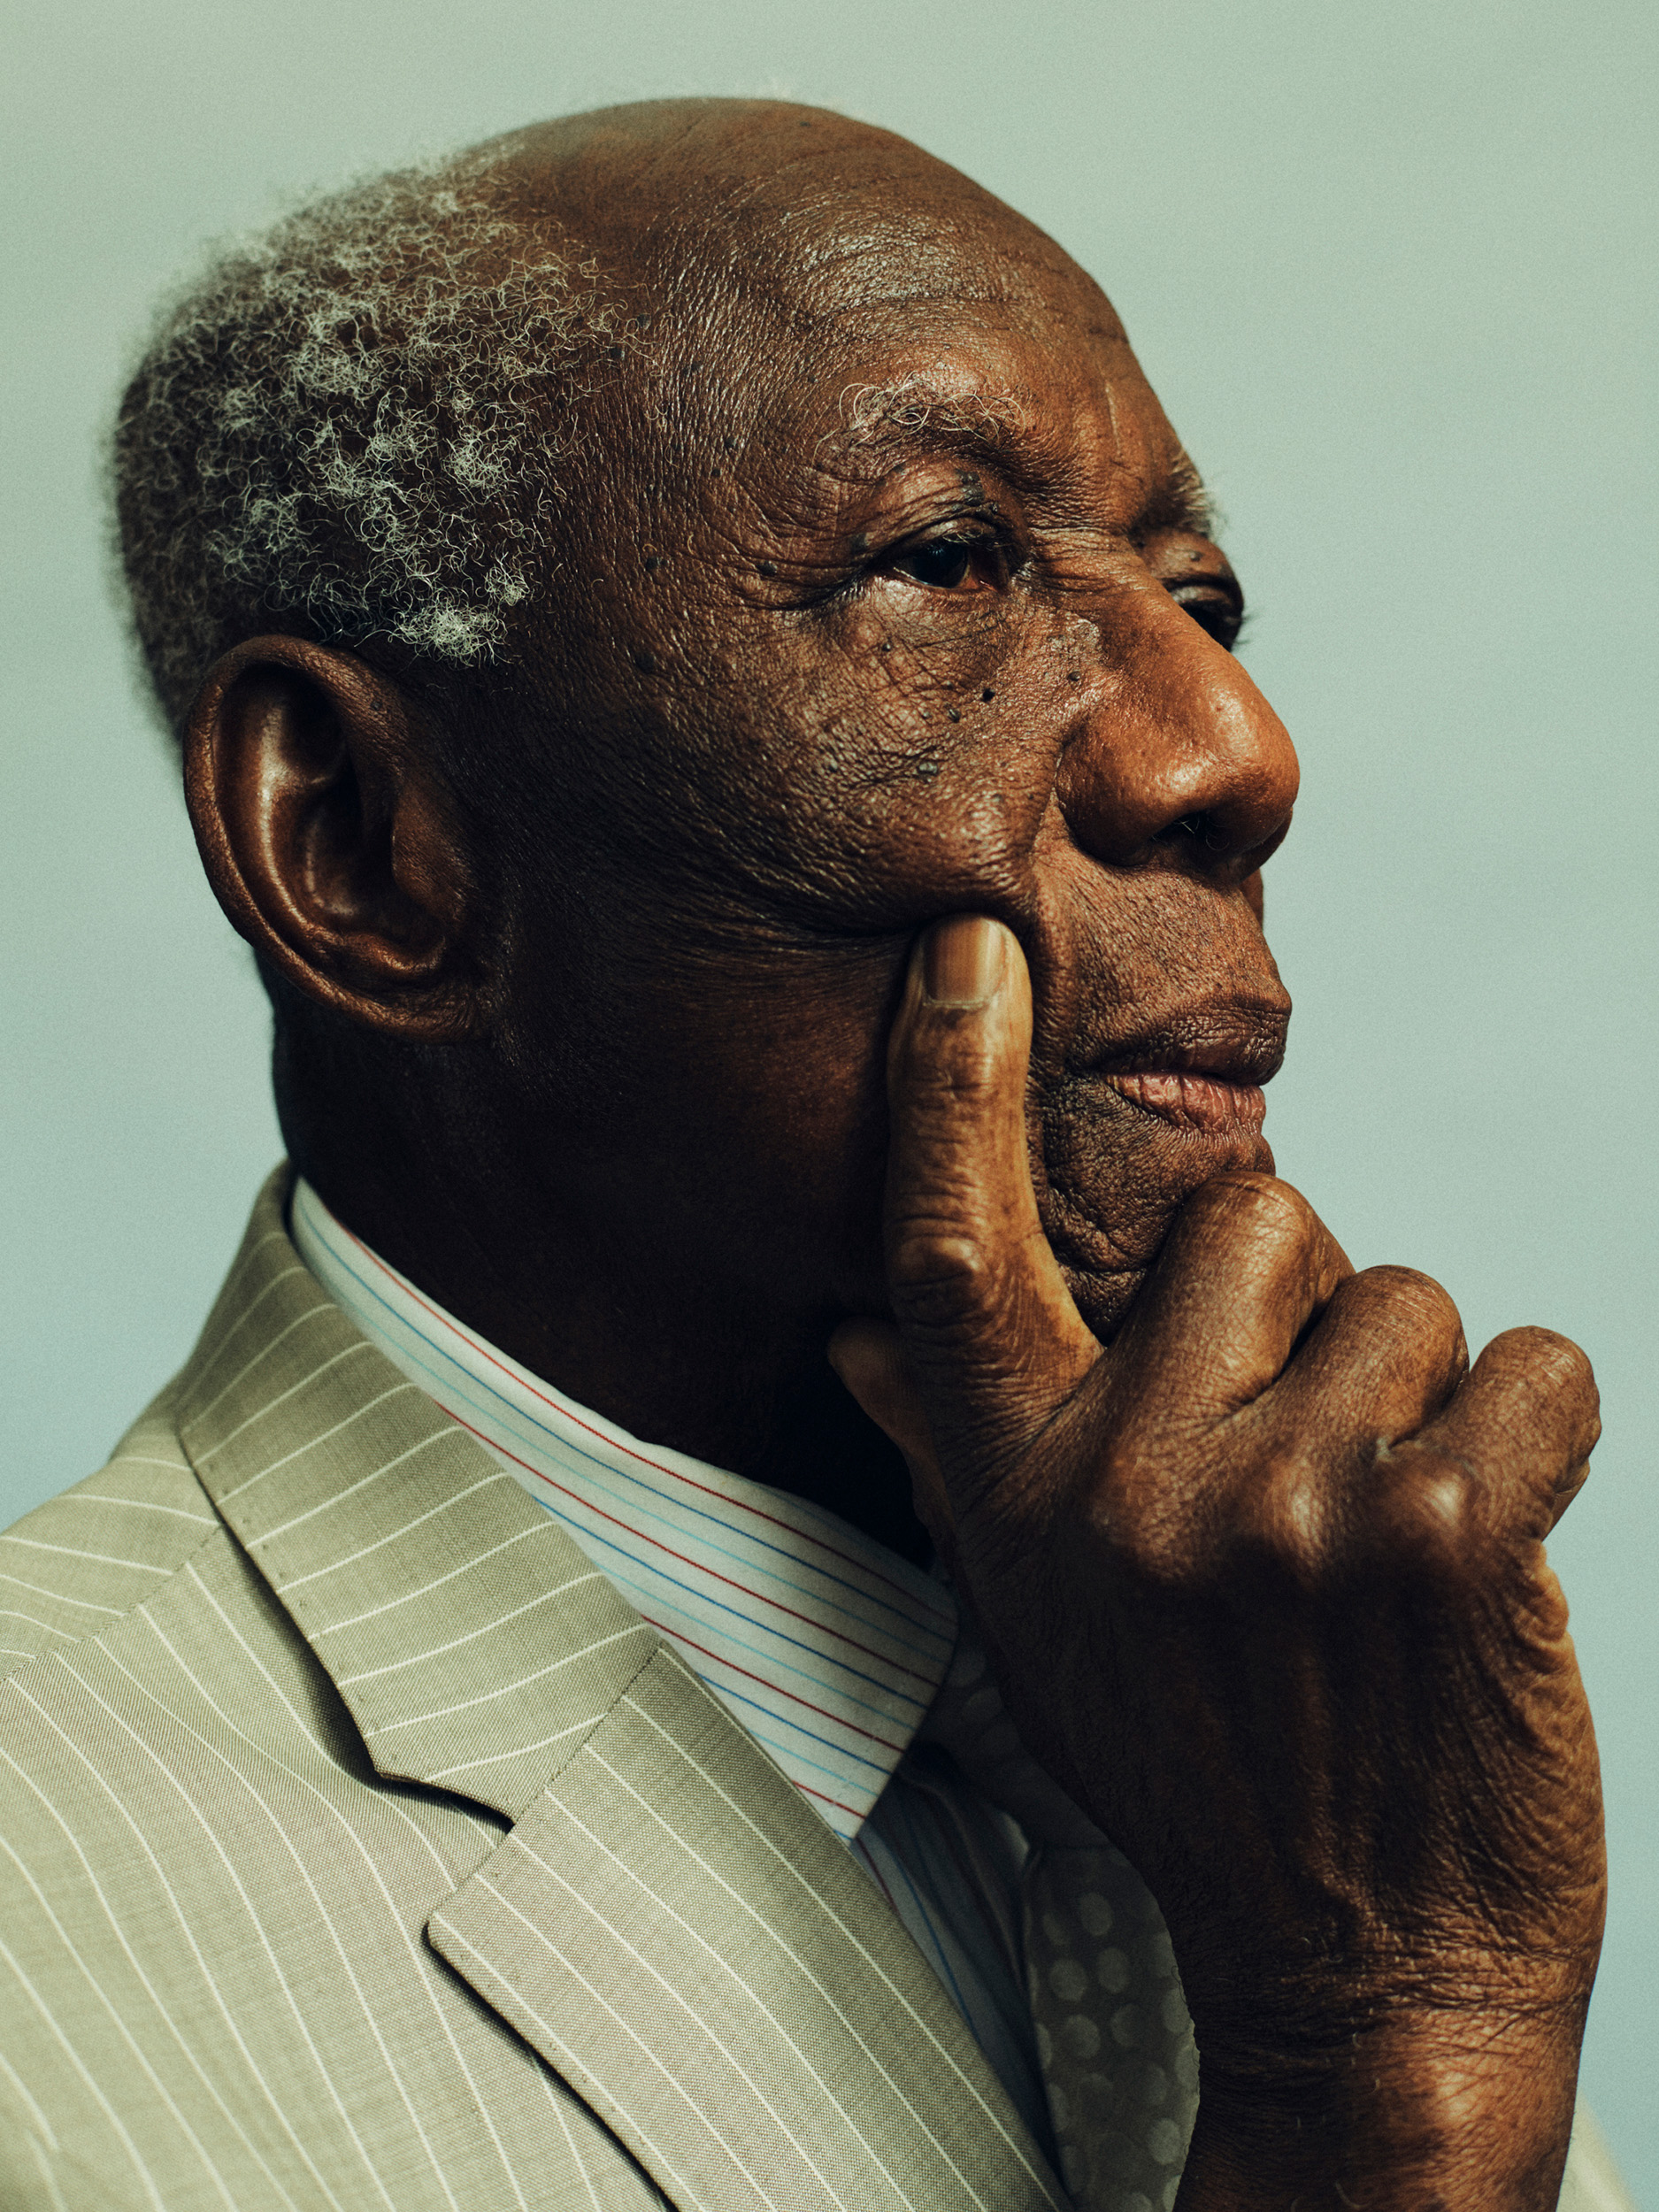 close up photograph of an elderly man